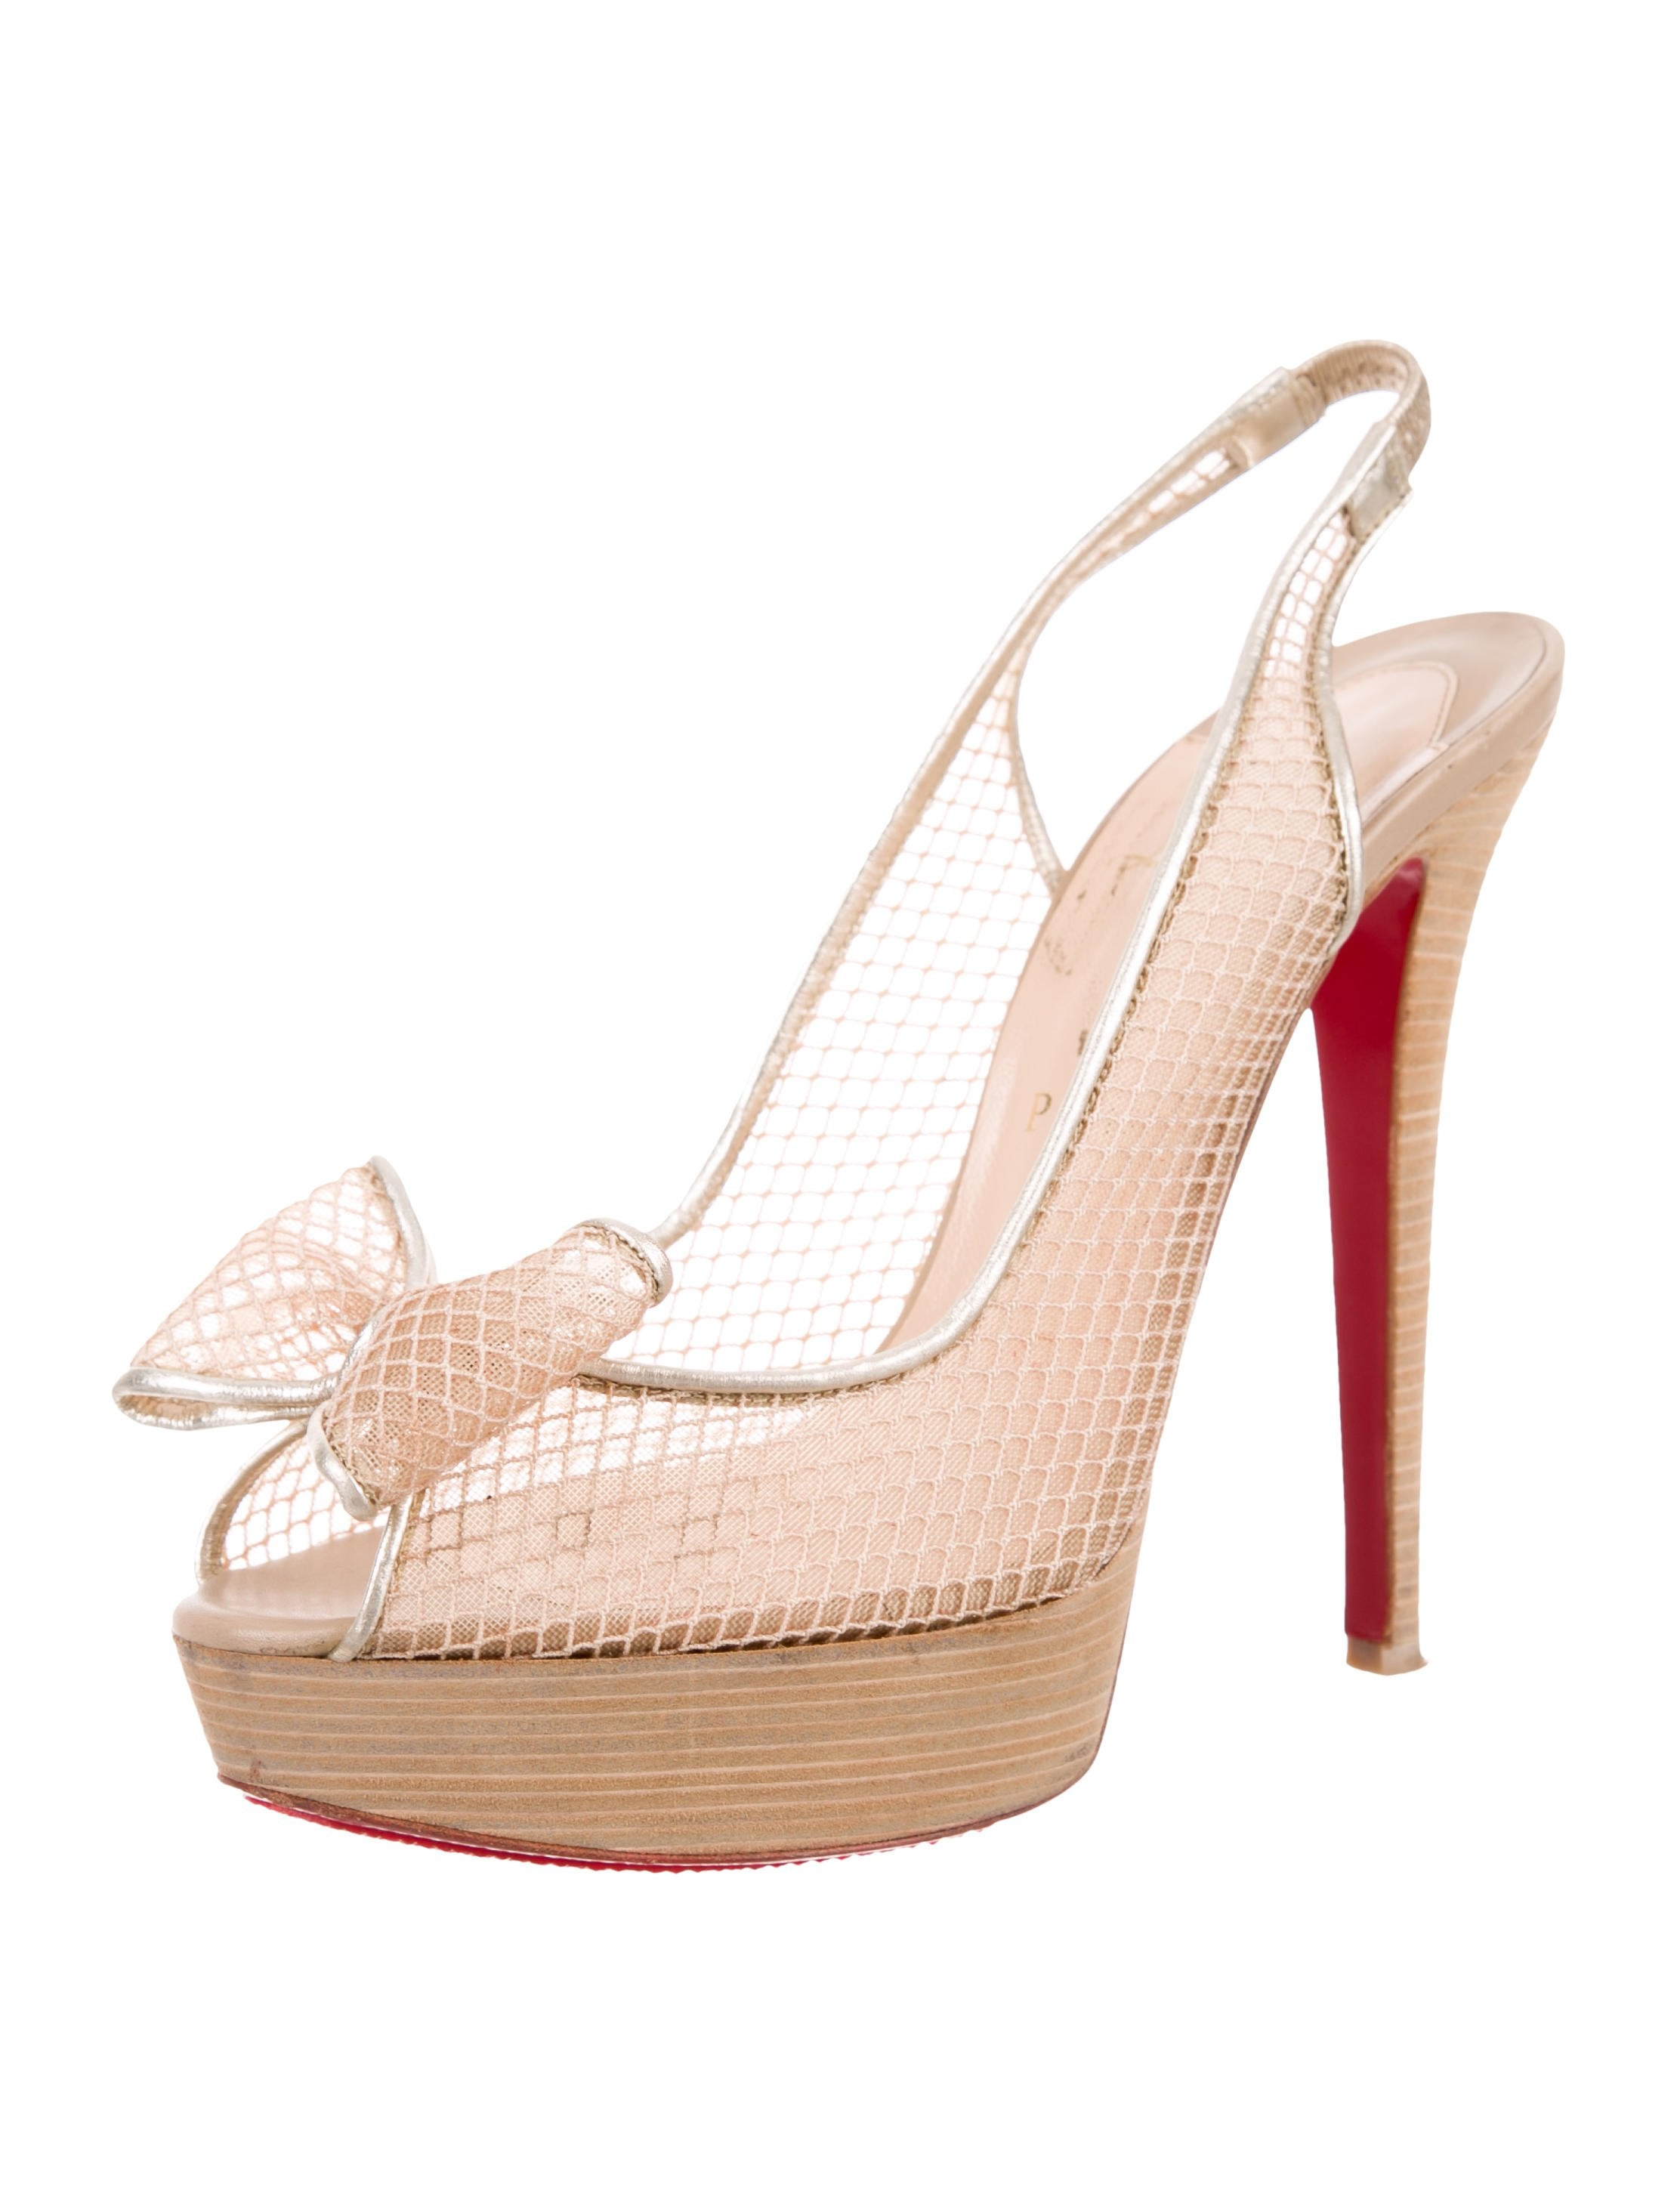 Christian Louboutin Exclu 140 Platform Pumps clearance huge surprise many kinds of for sale cheap discount authentic SMWrwRr